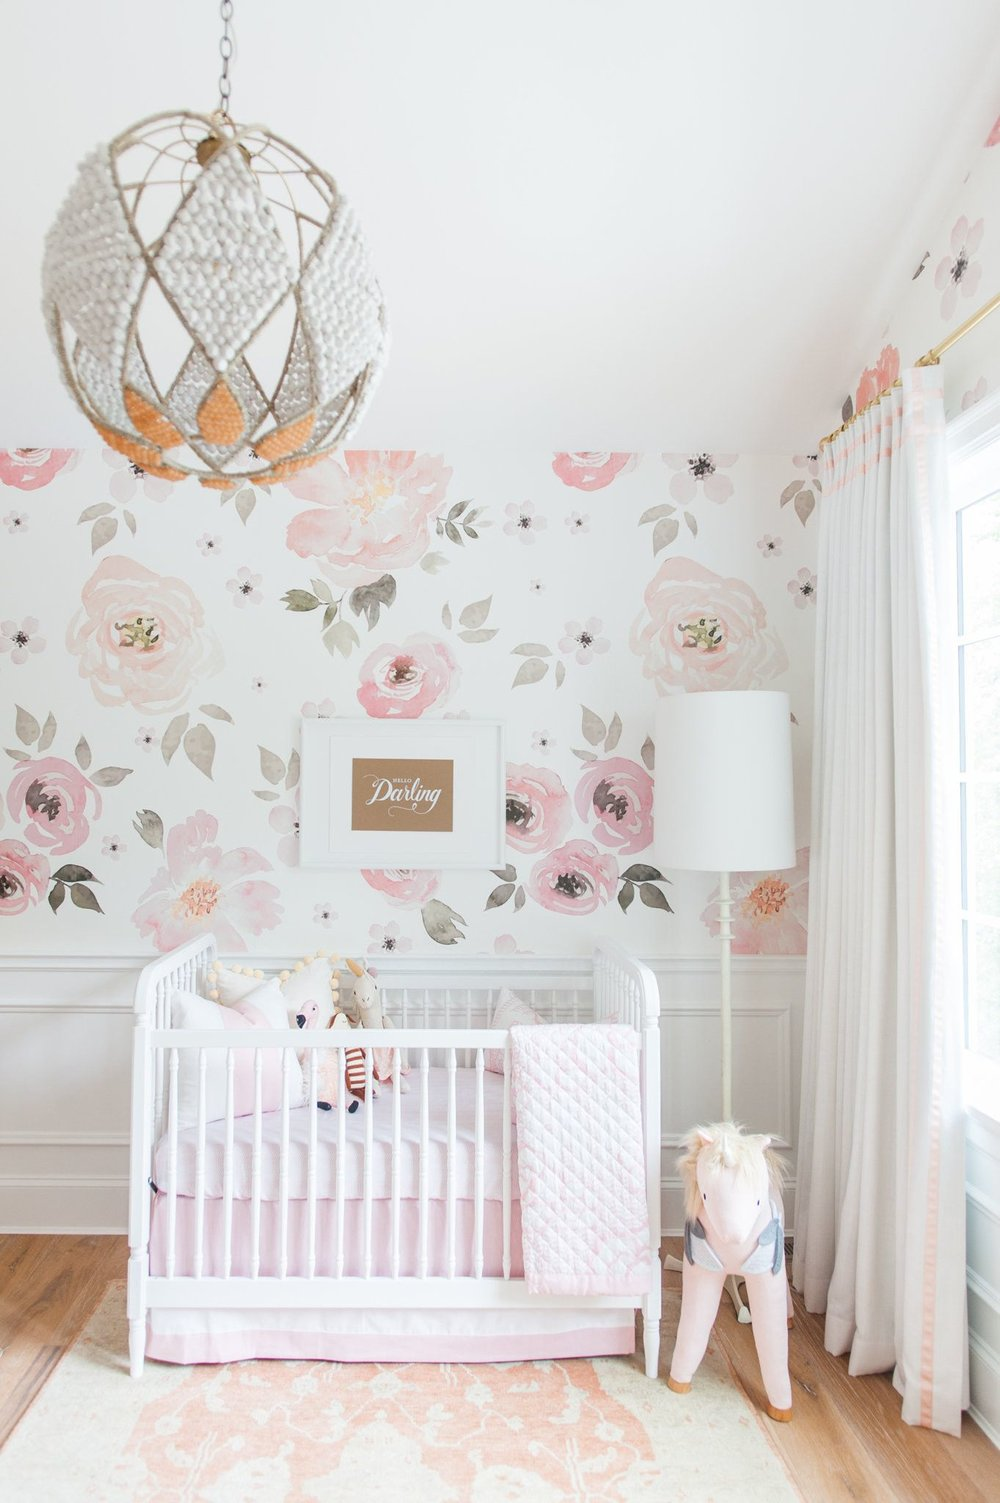 Wallpaper for Decorating Kid Spaces